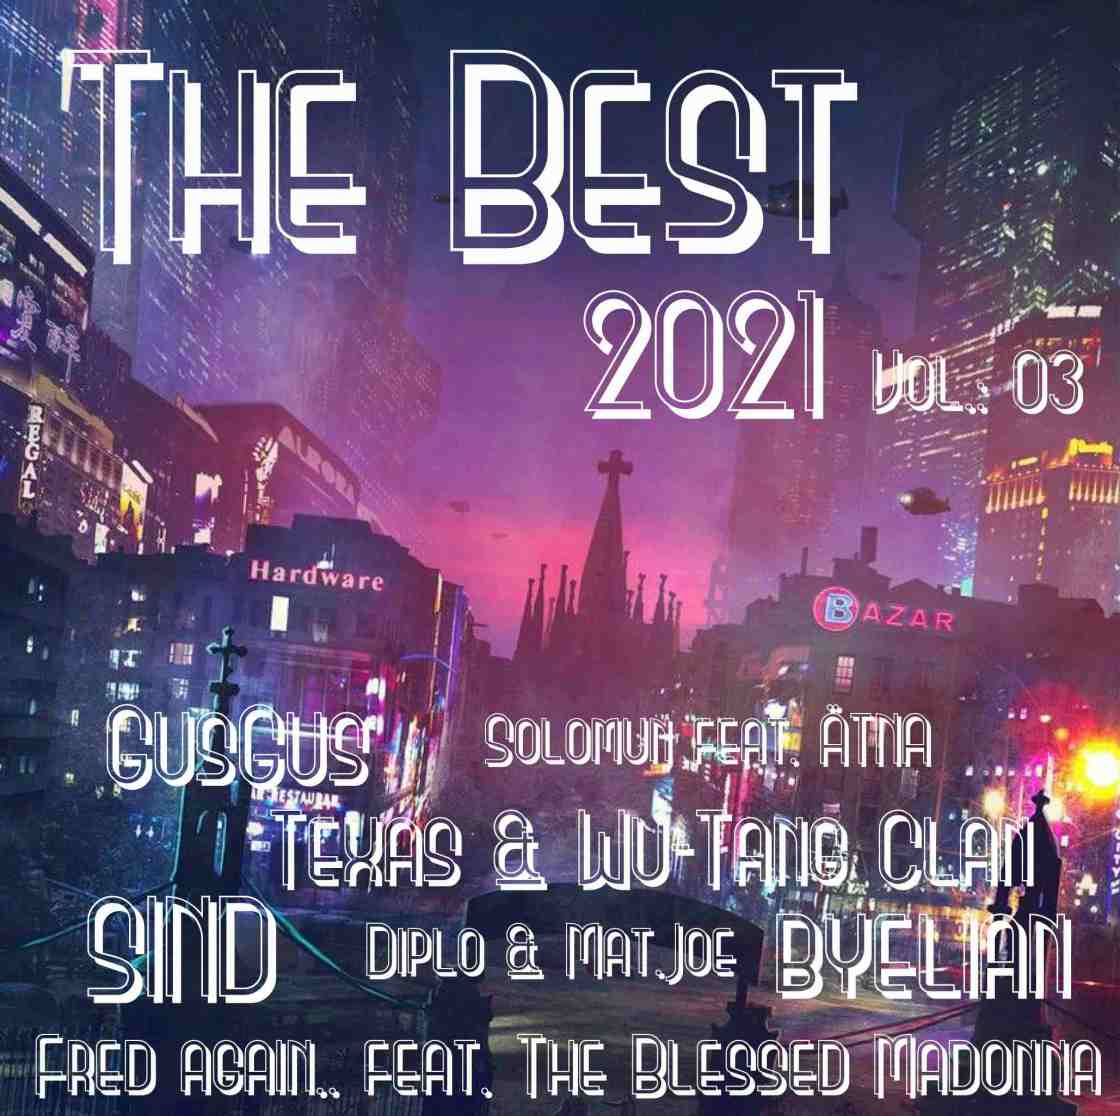 The Best Of 2021 Vol. 03